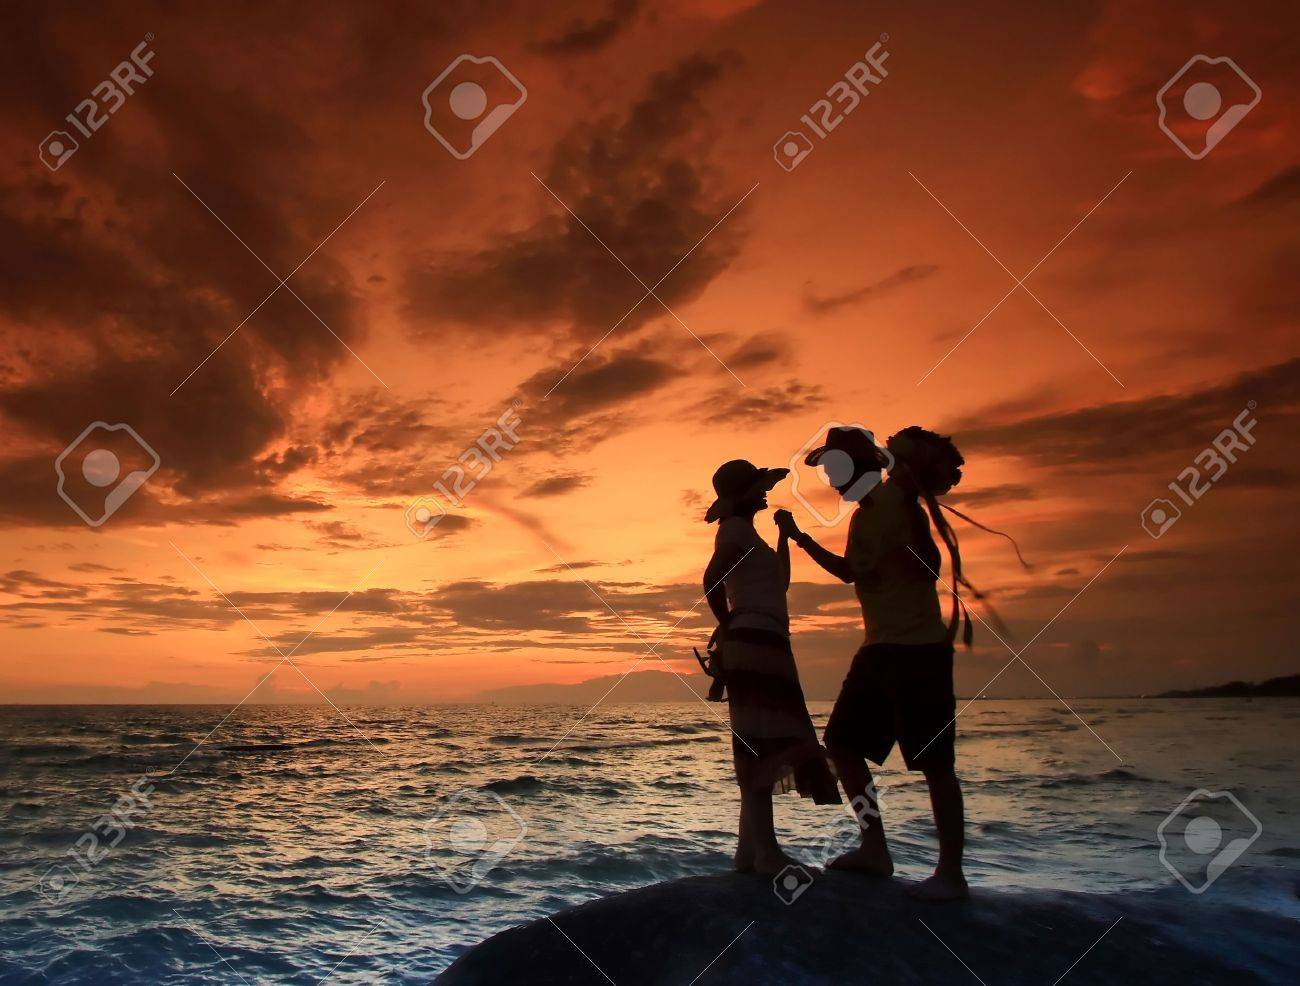 Romantic Scene on the Beach, Thailand Stock Photo - 7407789